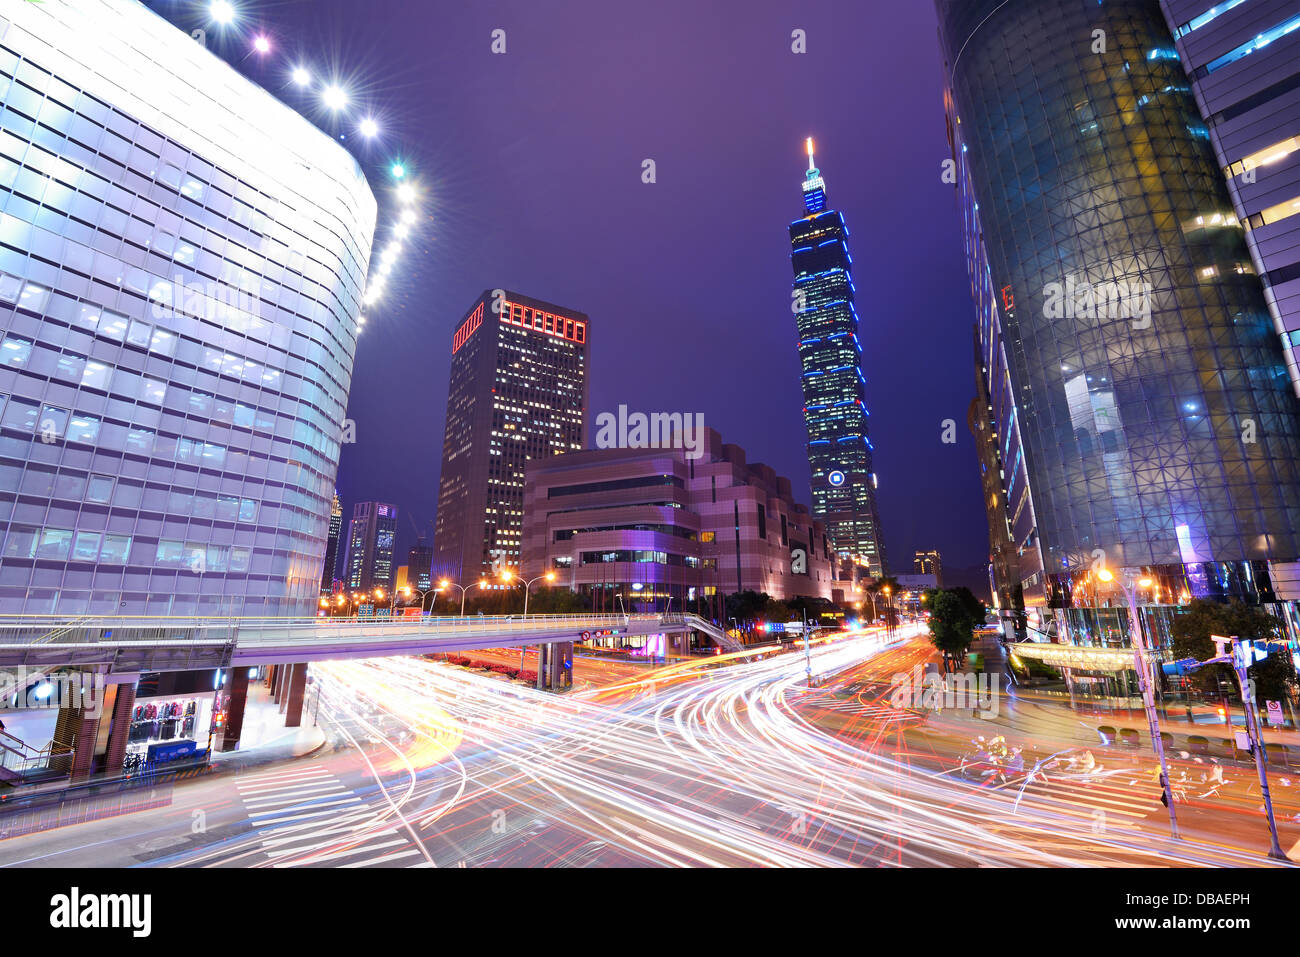 Taiwan, Taipei cityscape at the Xinyi District. - Stock Image